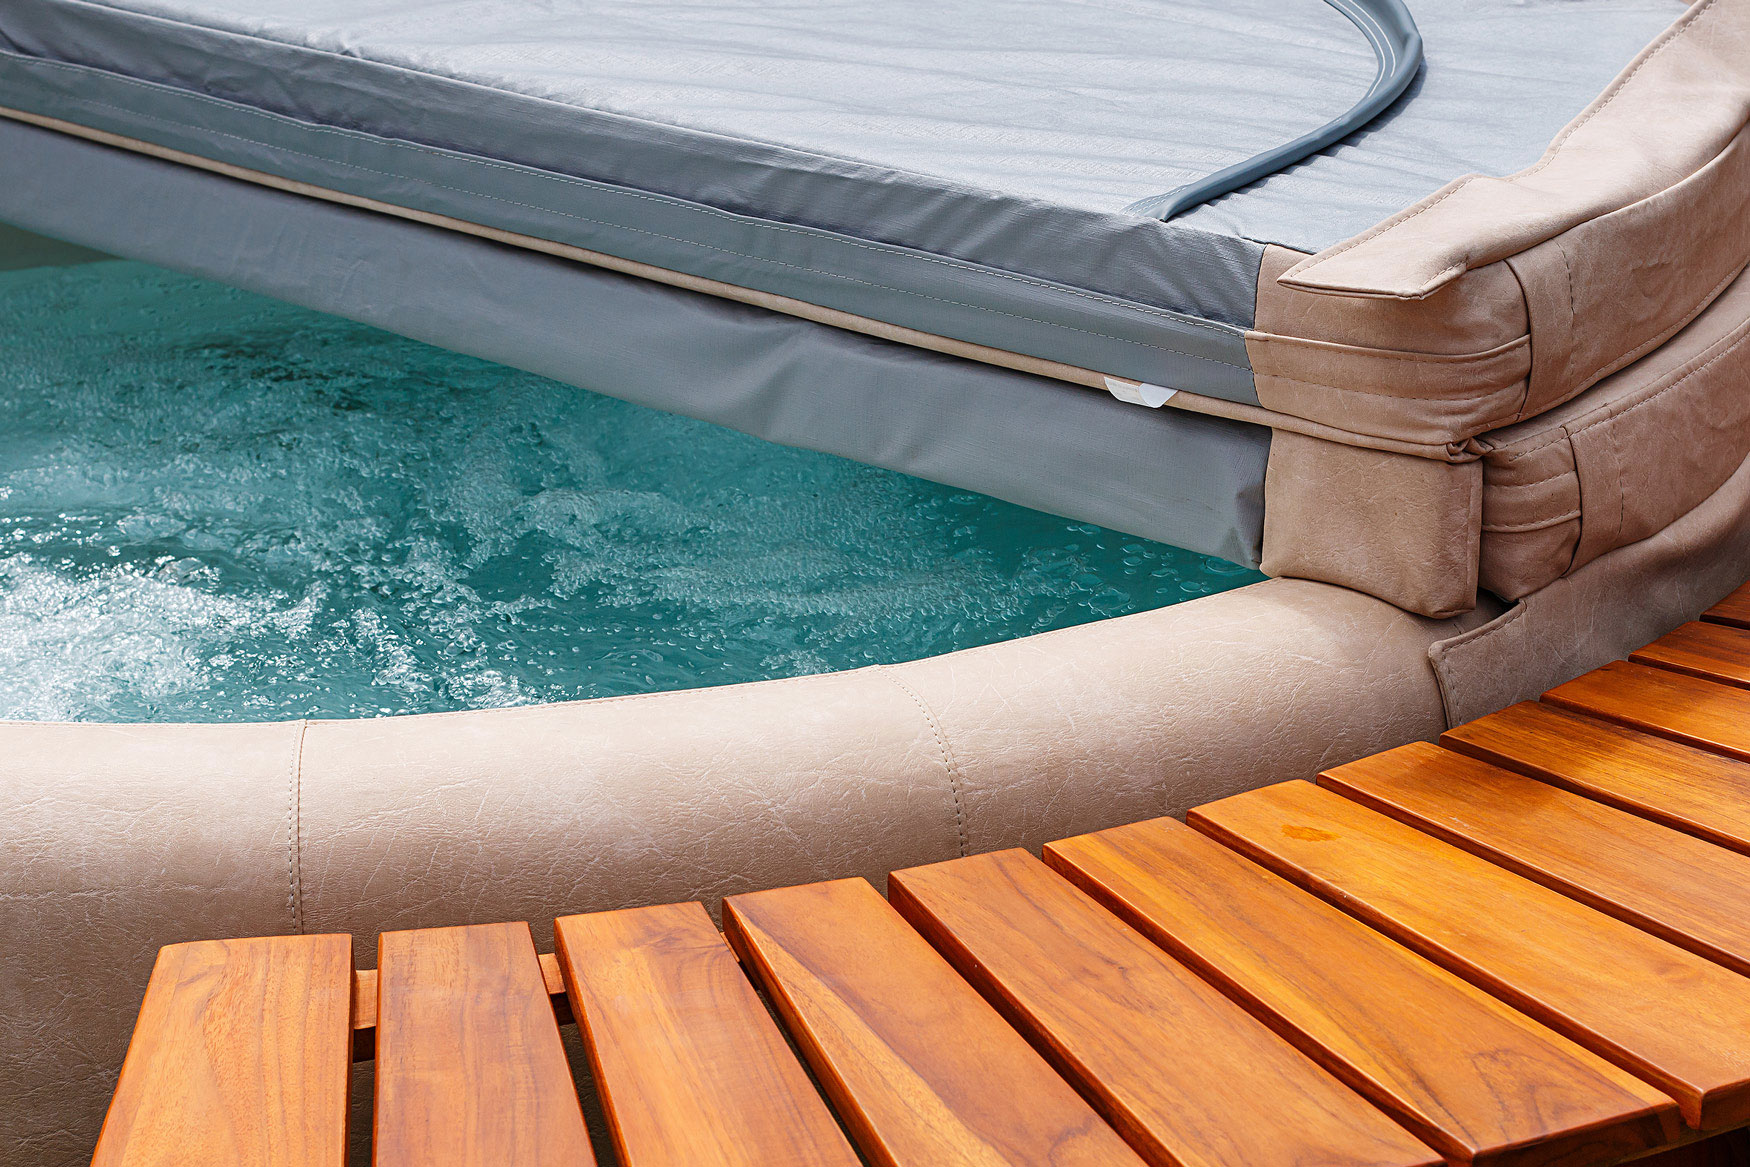 8 things you should never do to your hot tub cover - Buds Spas & Pools